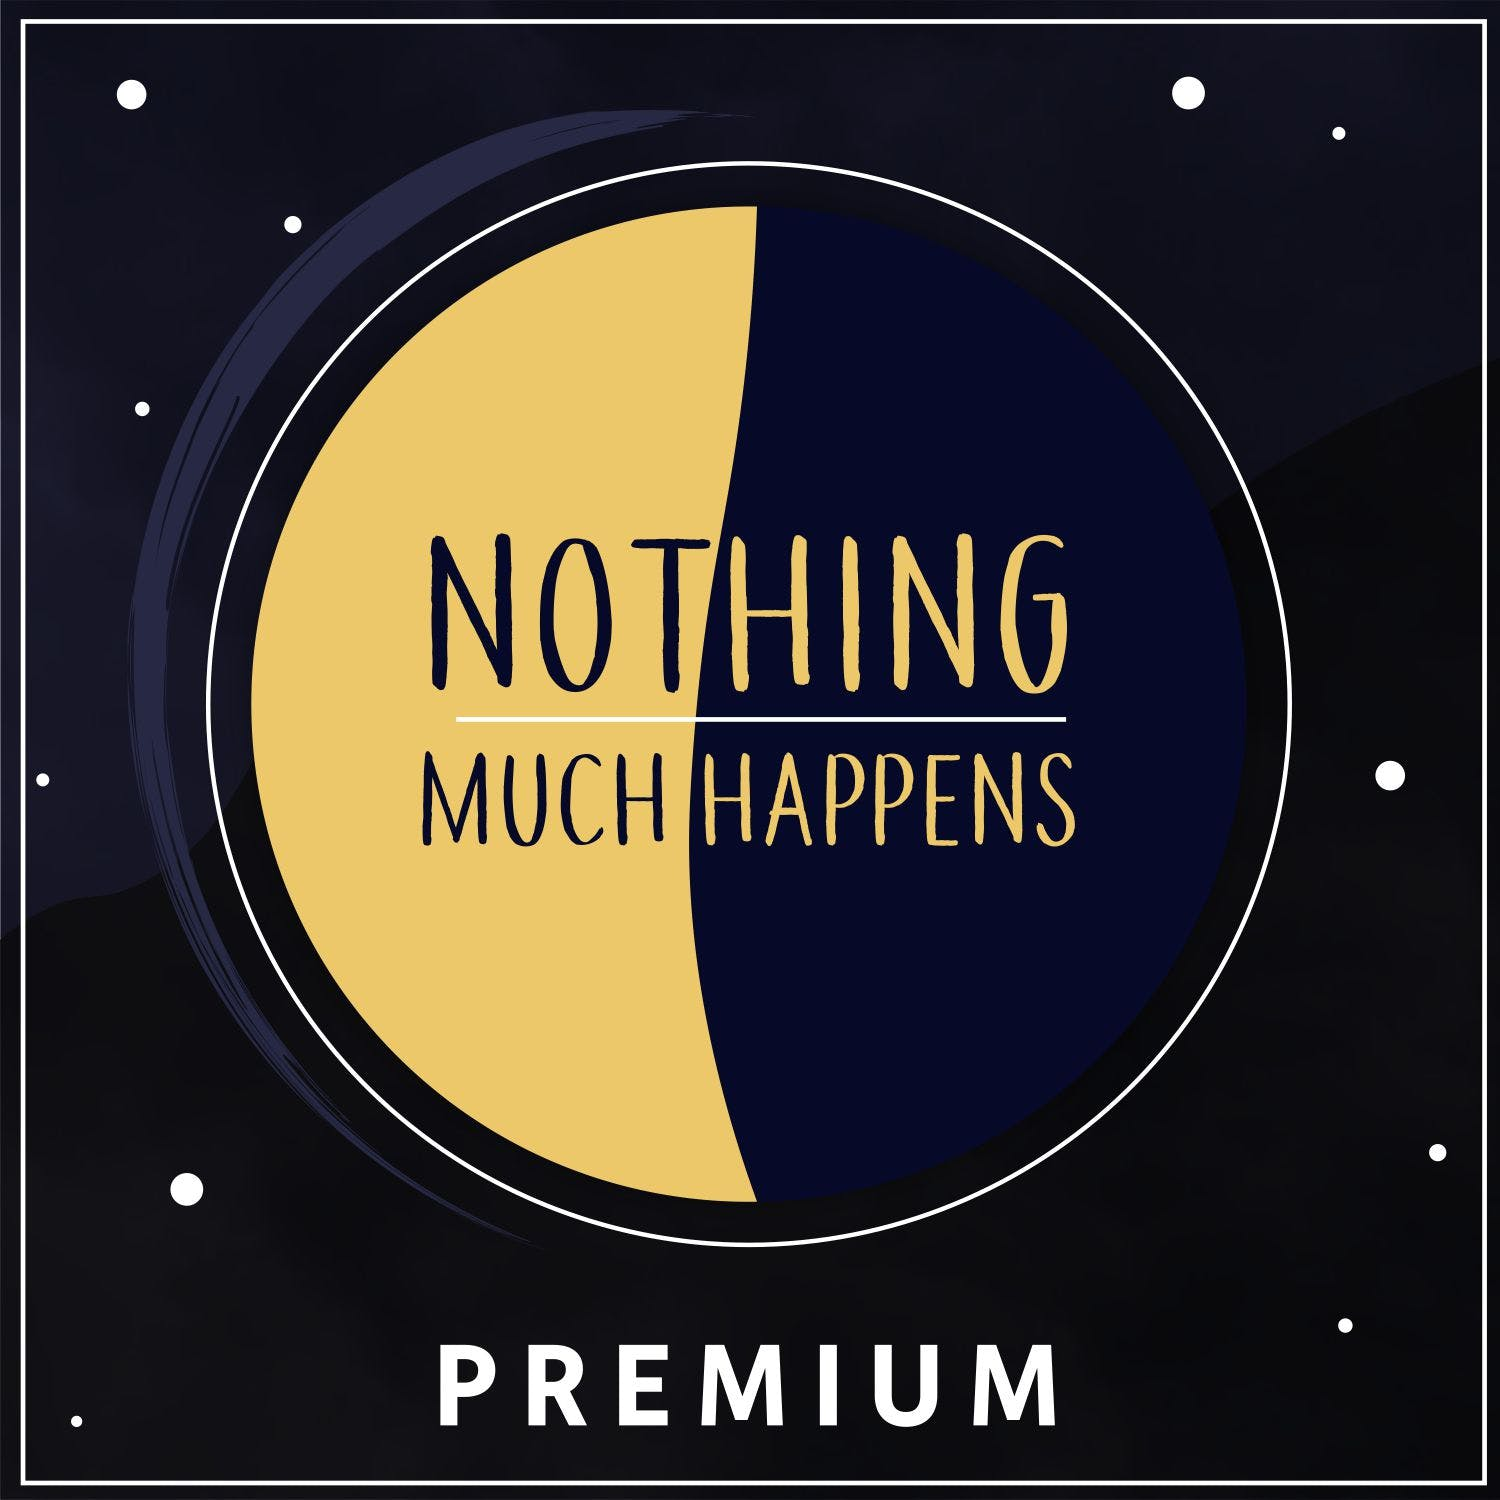 Nothing Much Happens Premium podcast tile